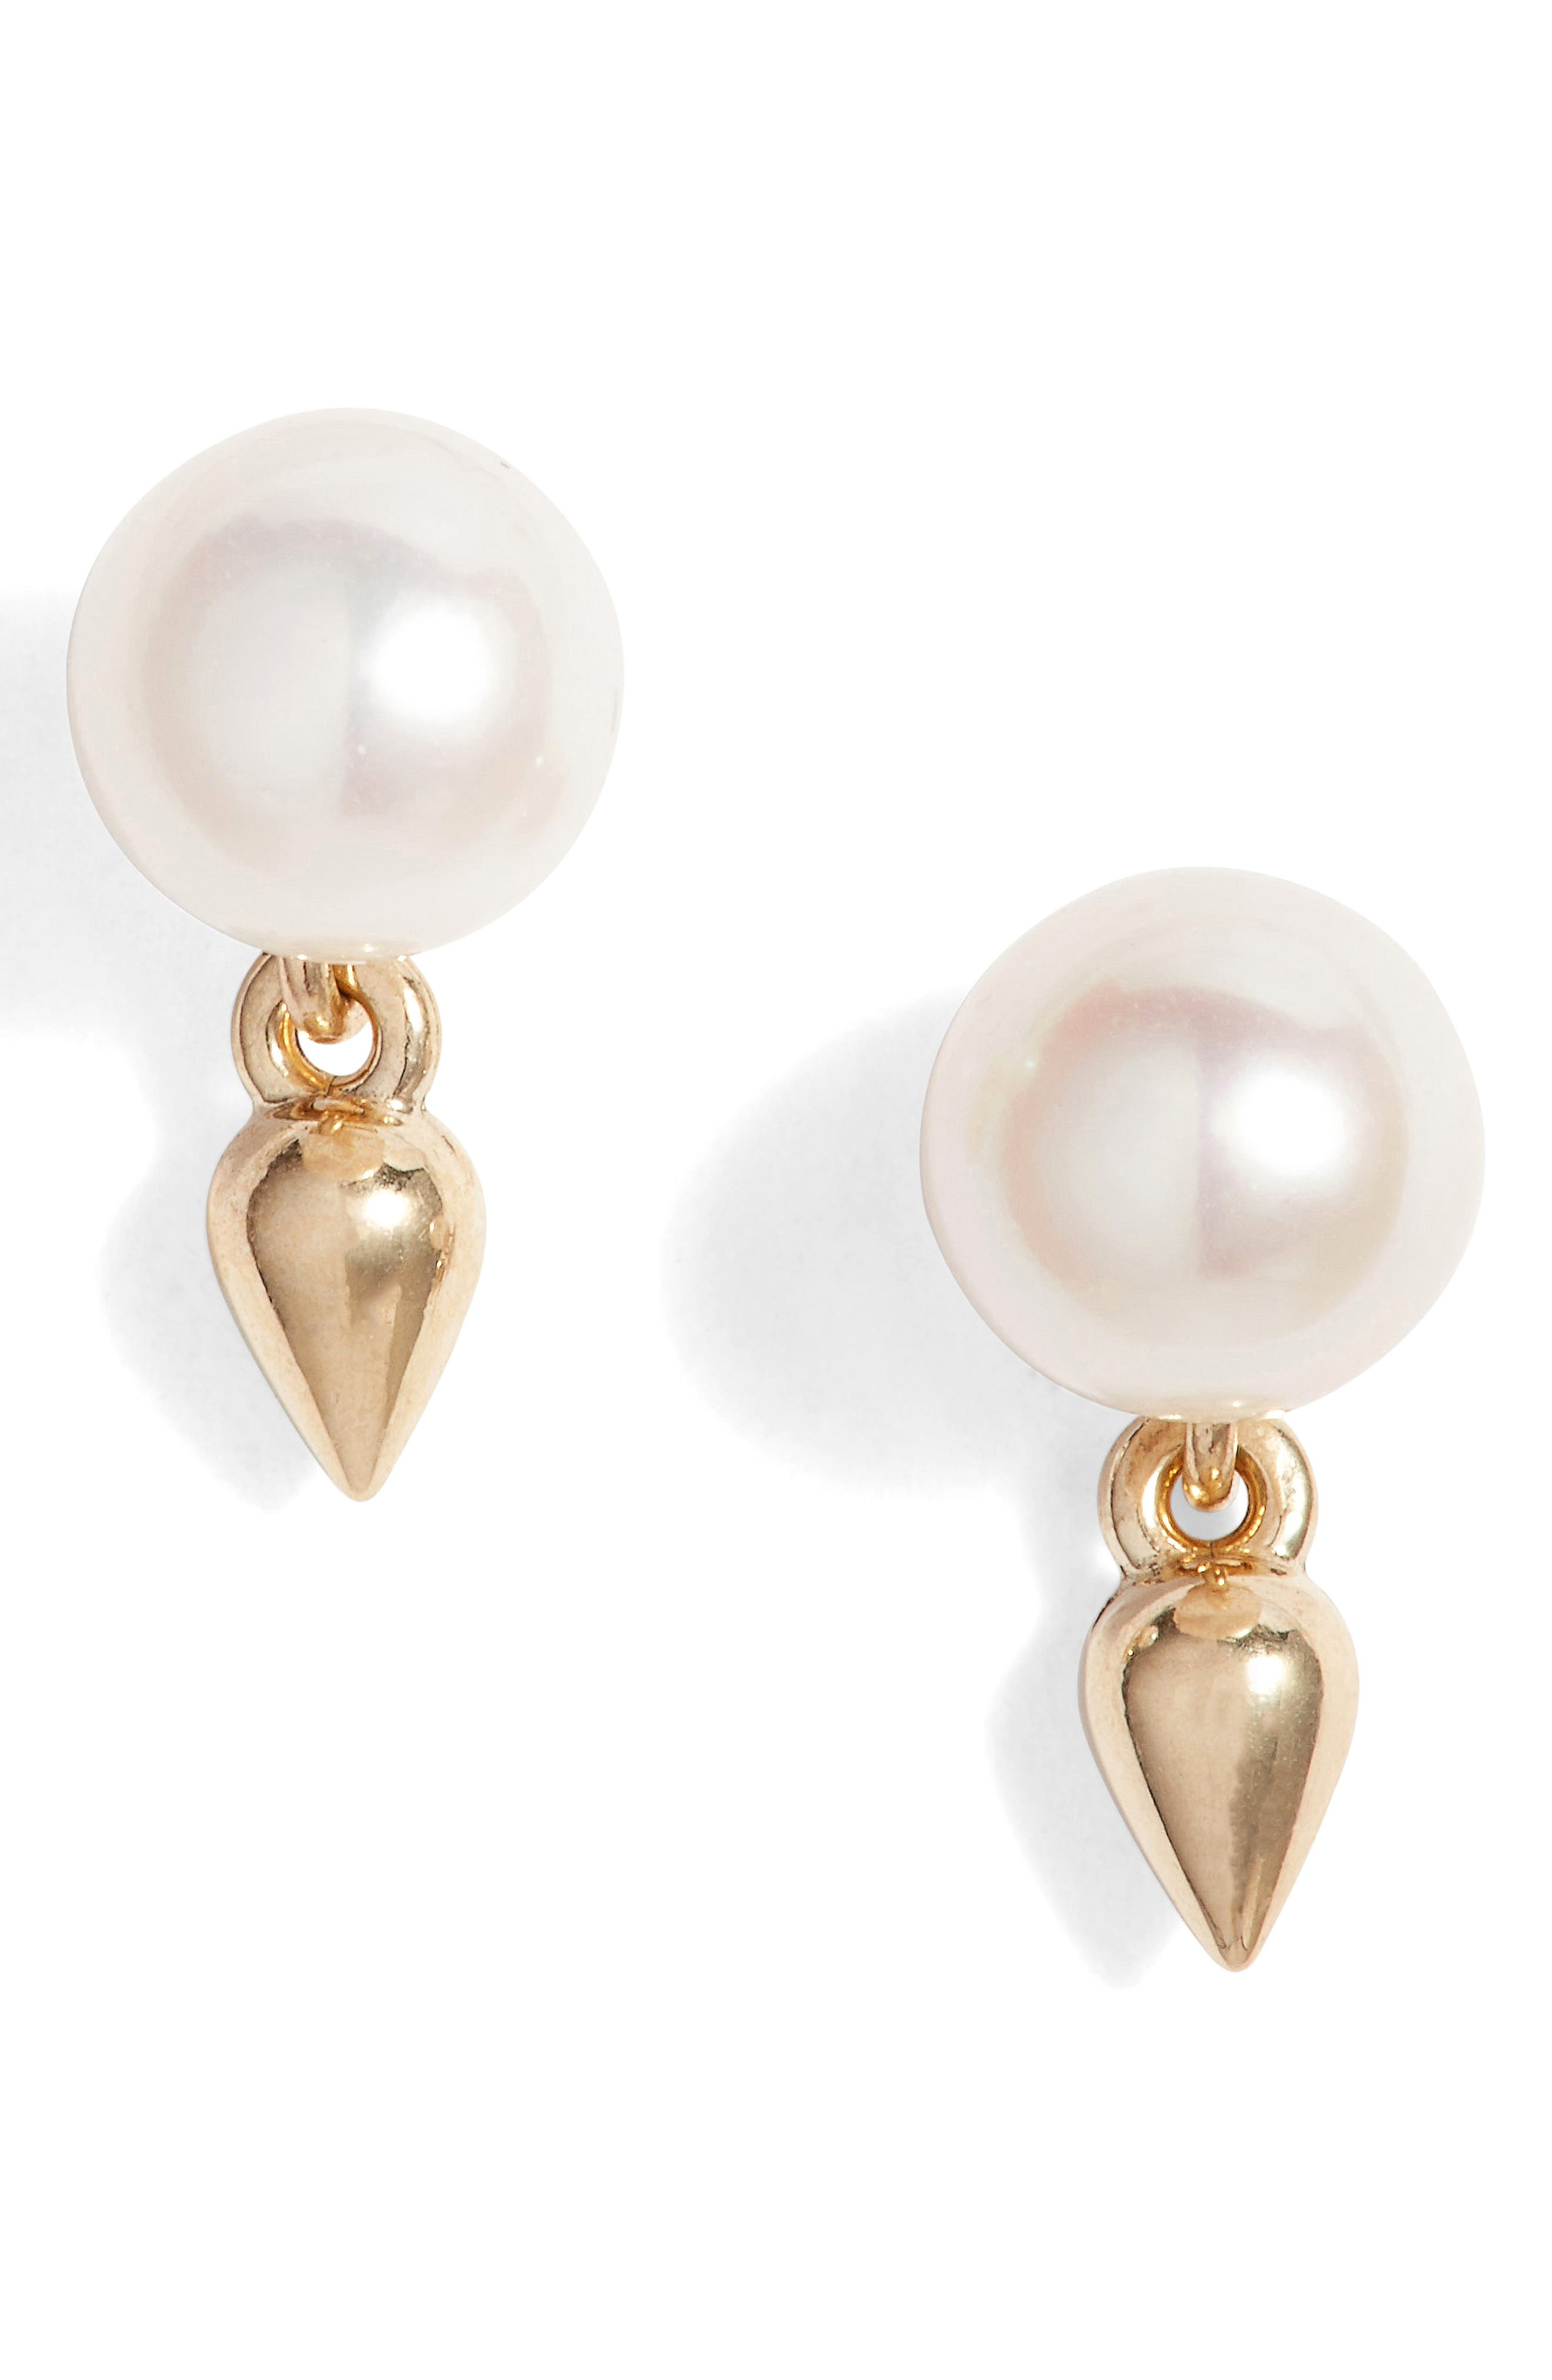 Pearl Stud Earrings,                         Main,                         color, Yellow Gold